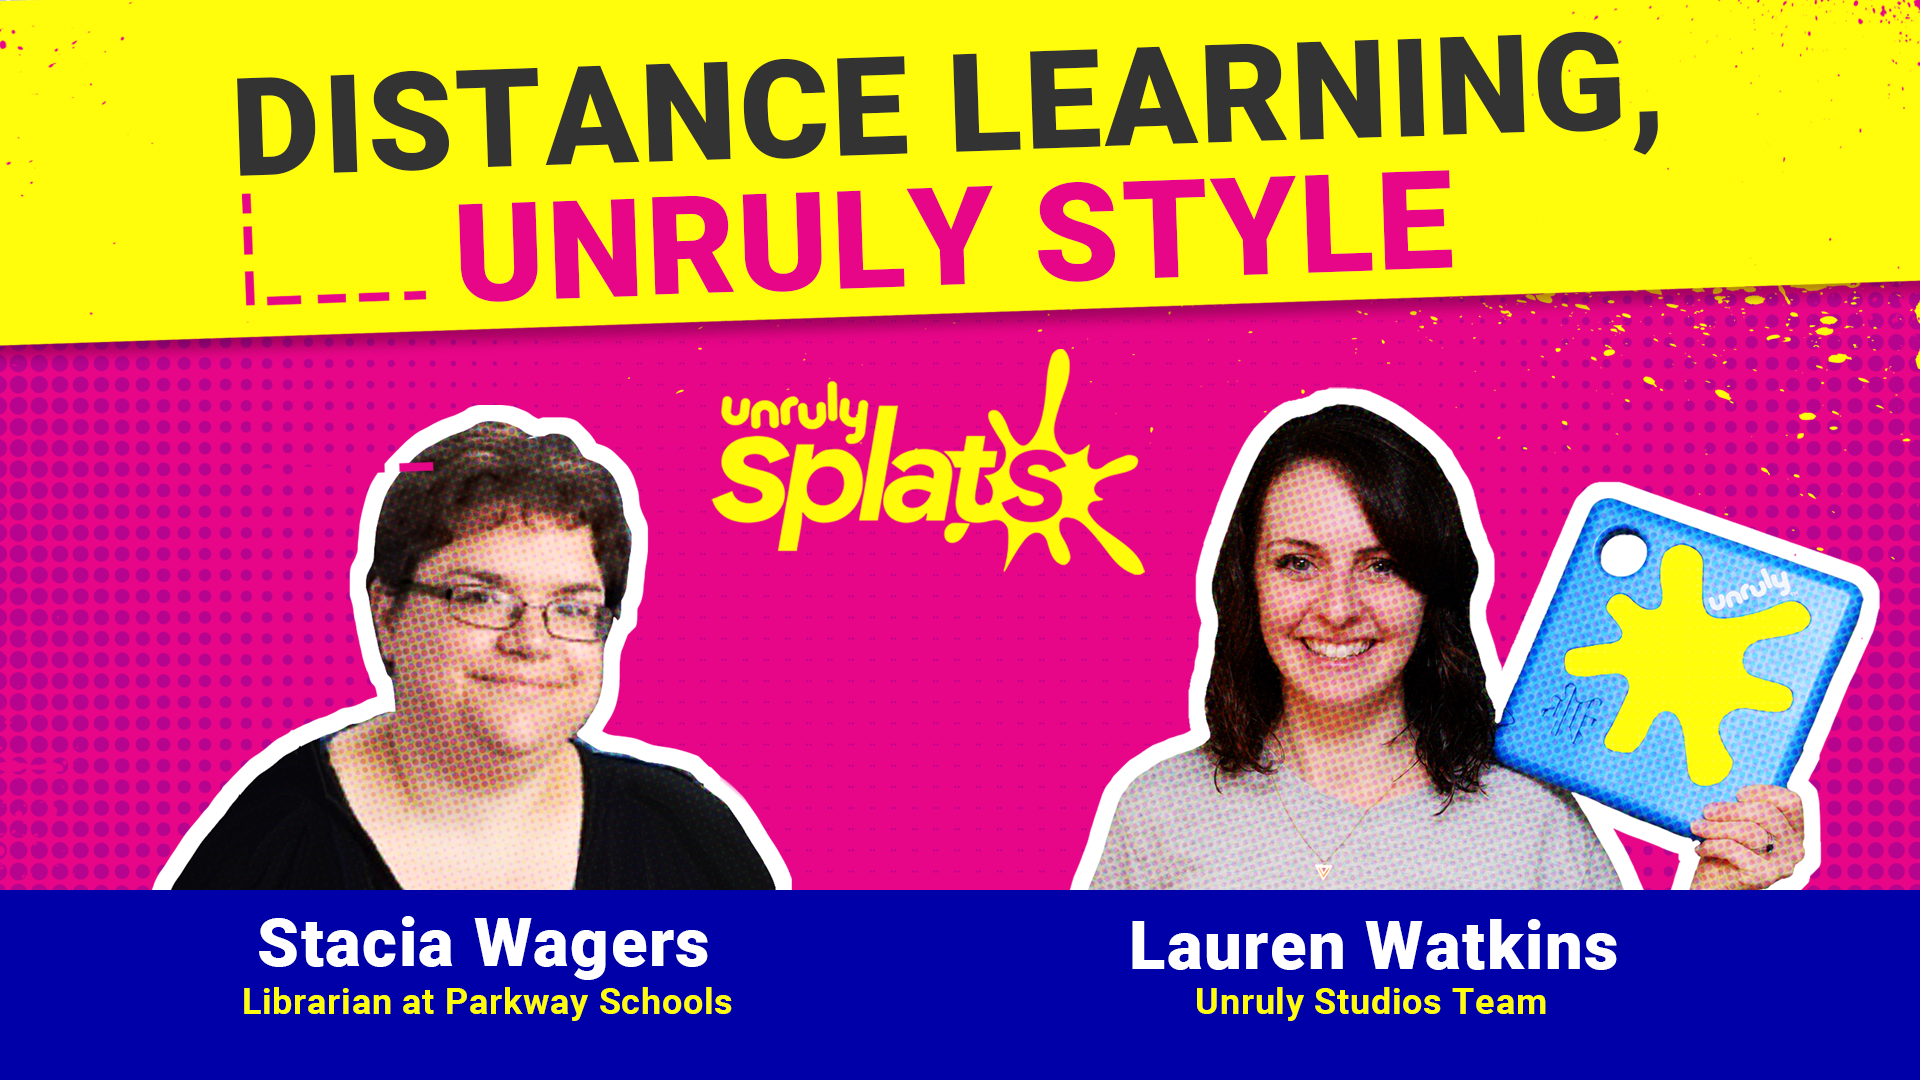 STEM Webinar - Distance Learning, Unruly Style!